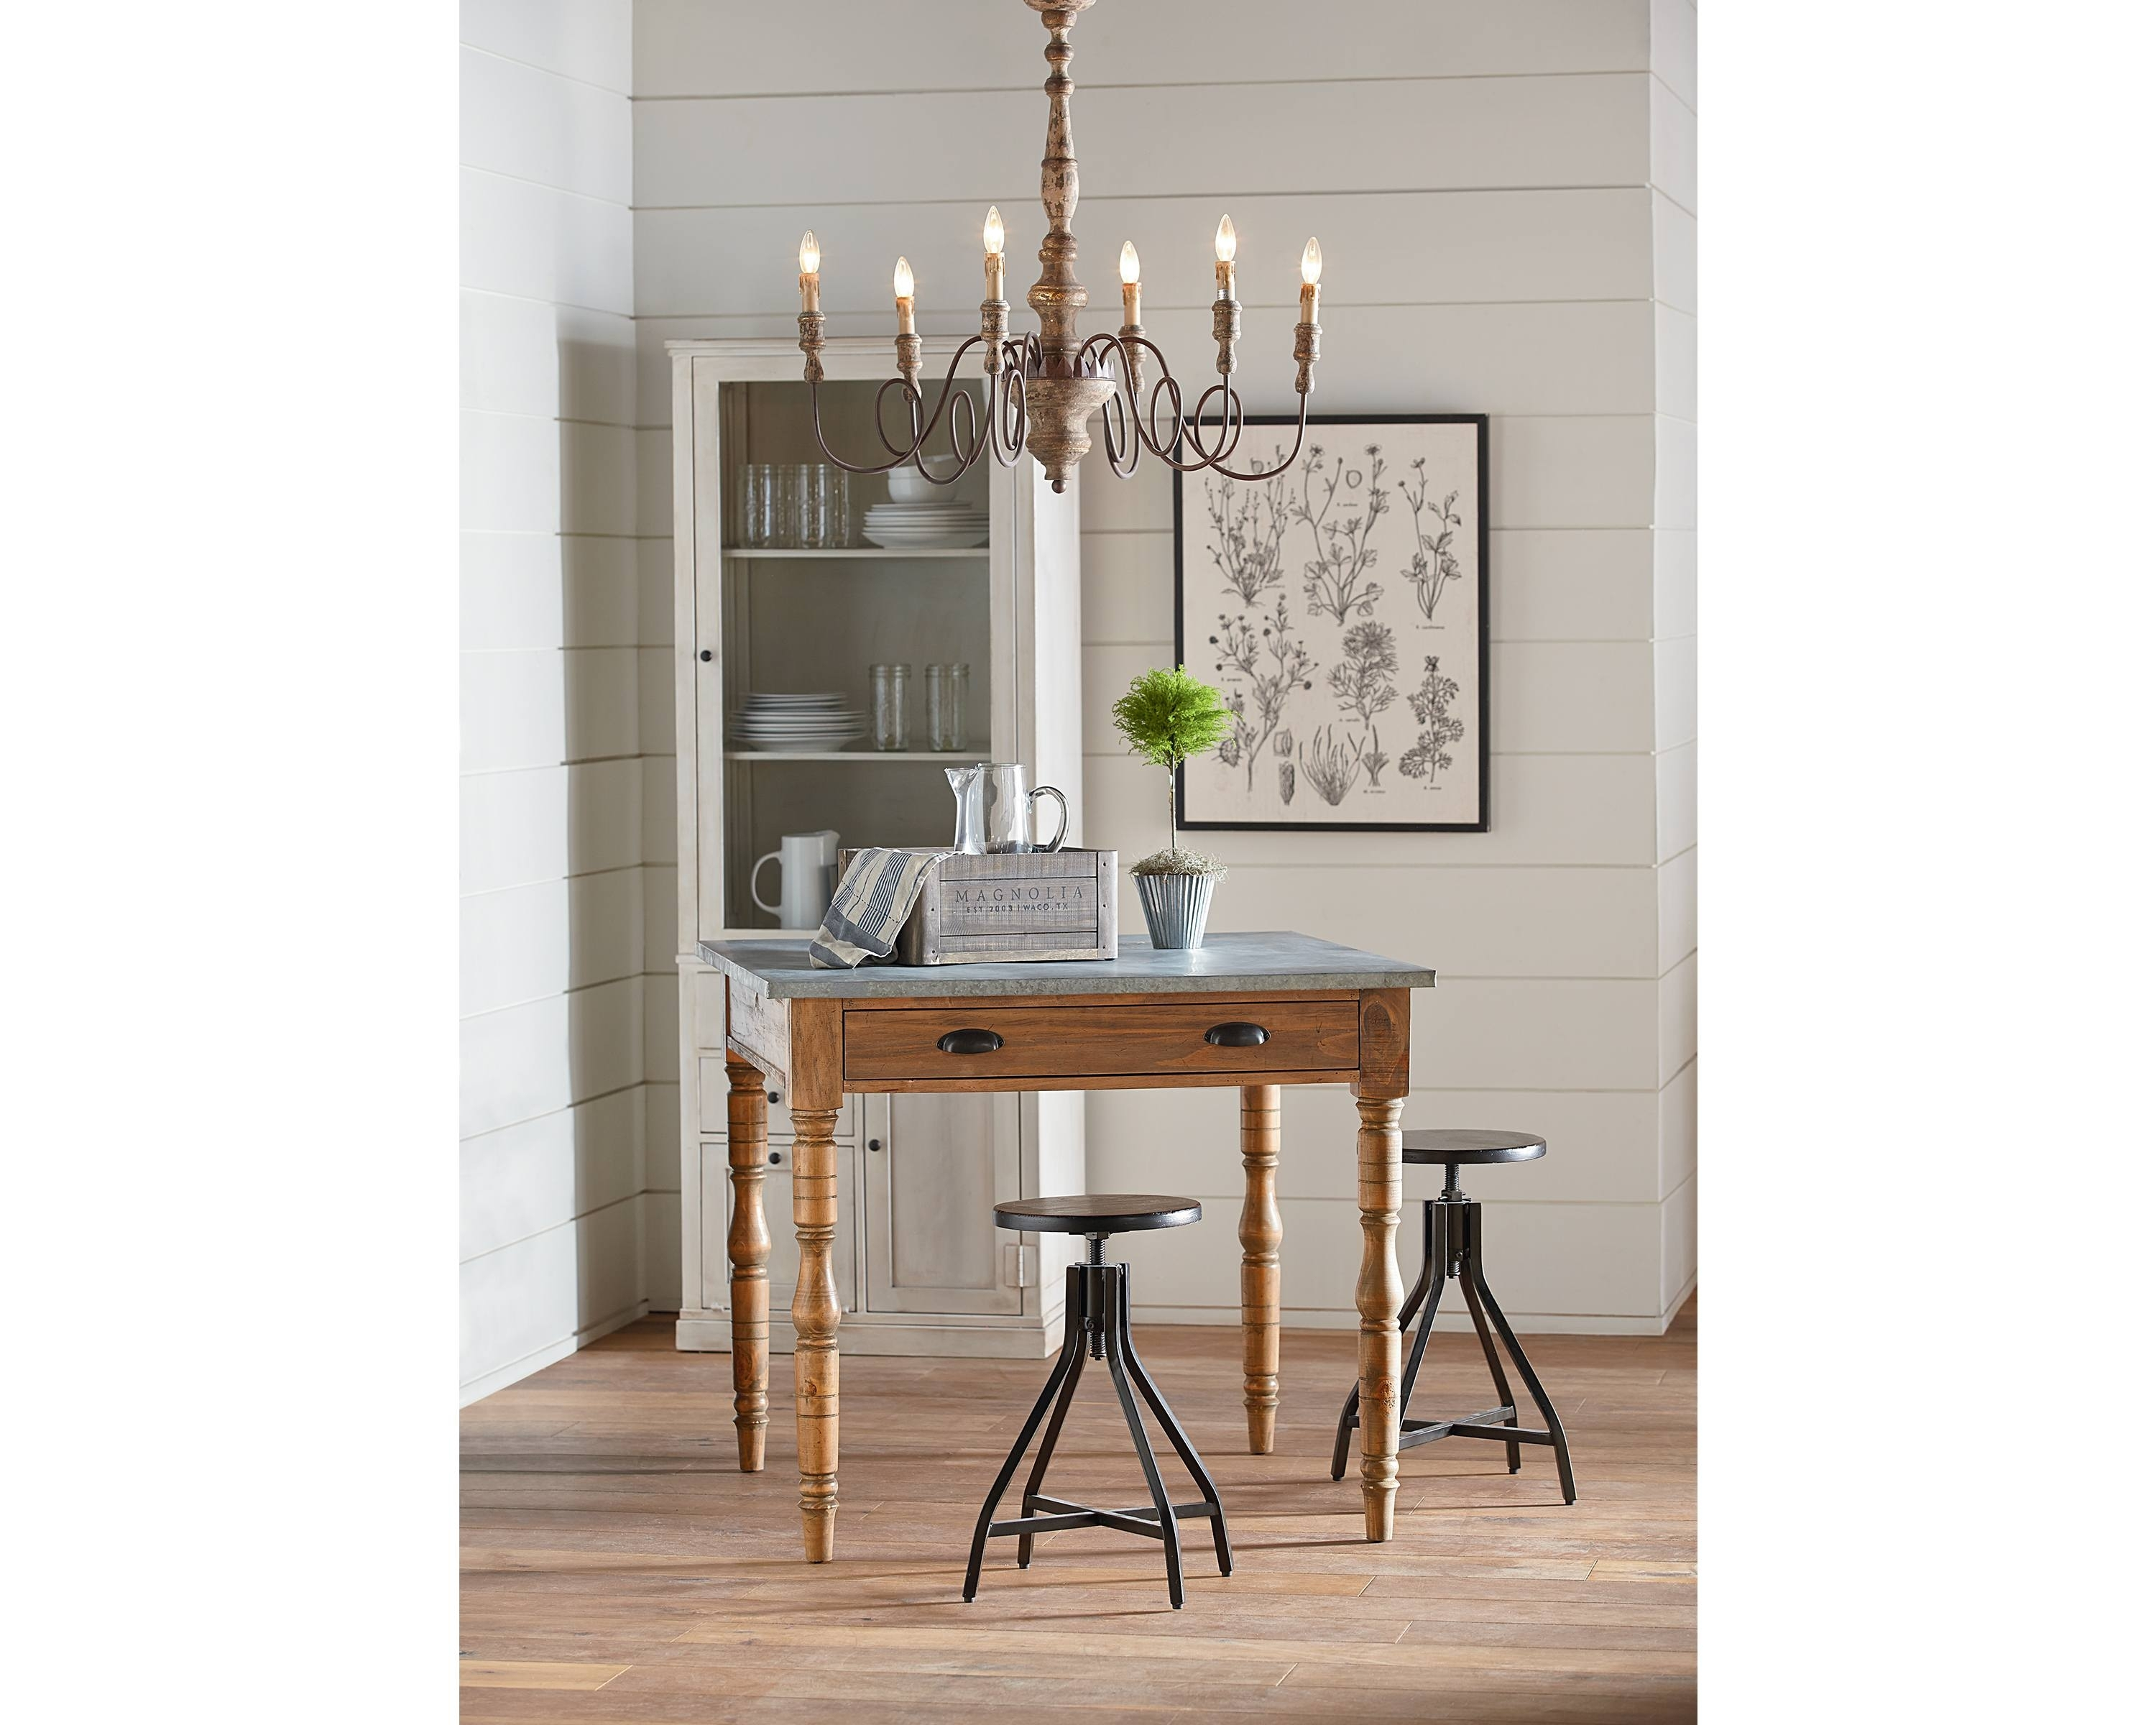 Featured Image of Magnolia Home Taper Turned Bench Gathering Tables With Zinc Top